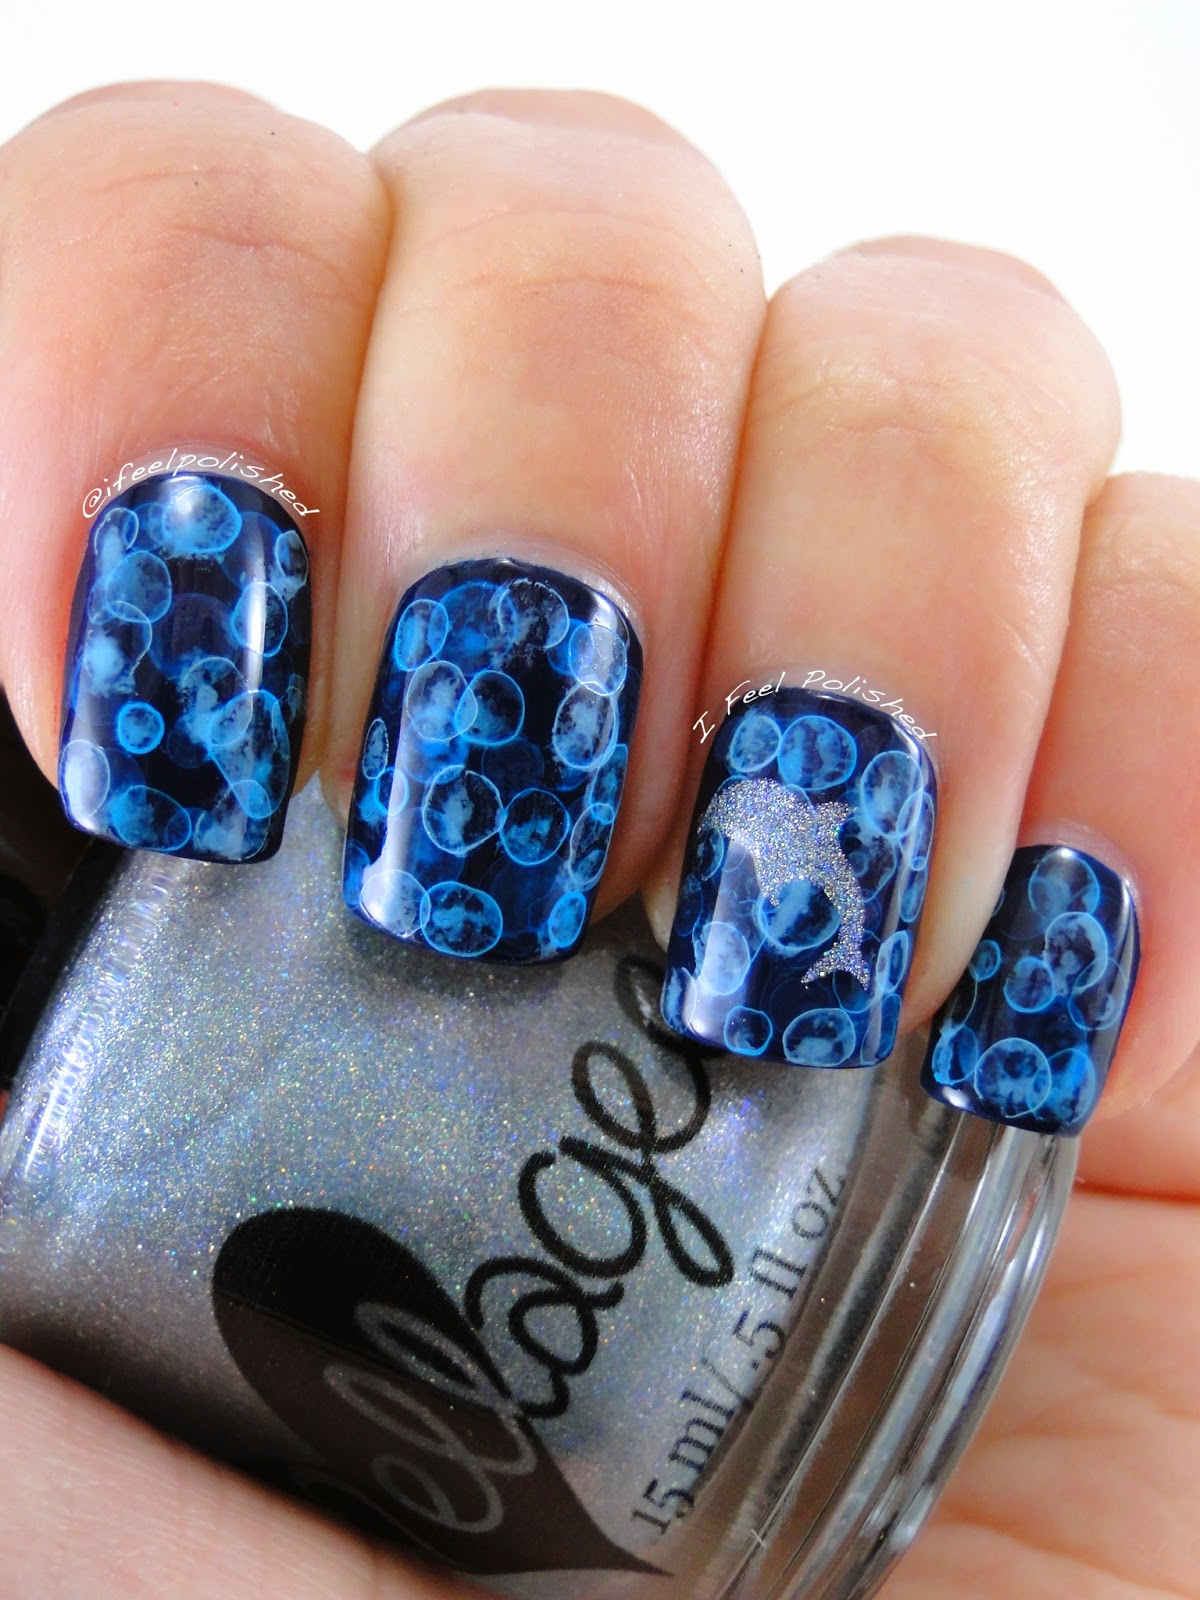 Bubble Nail Art - I Feel Polished!: SmART Nail Stencils: Dolphins - Dolphin - Dolphin Nail Art Graham Reid